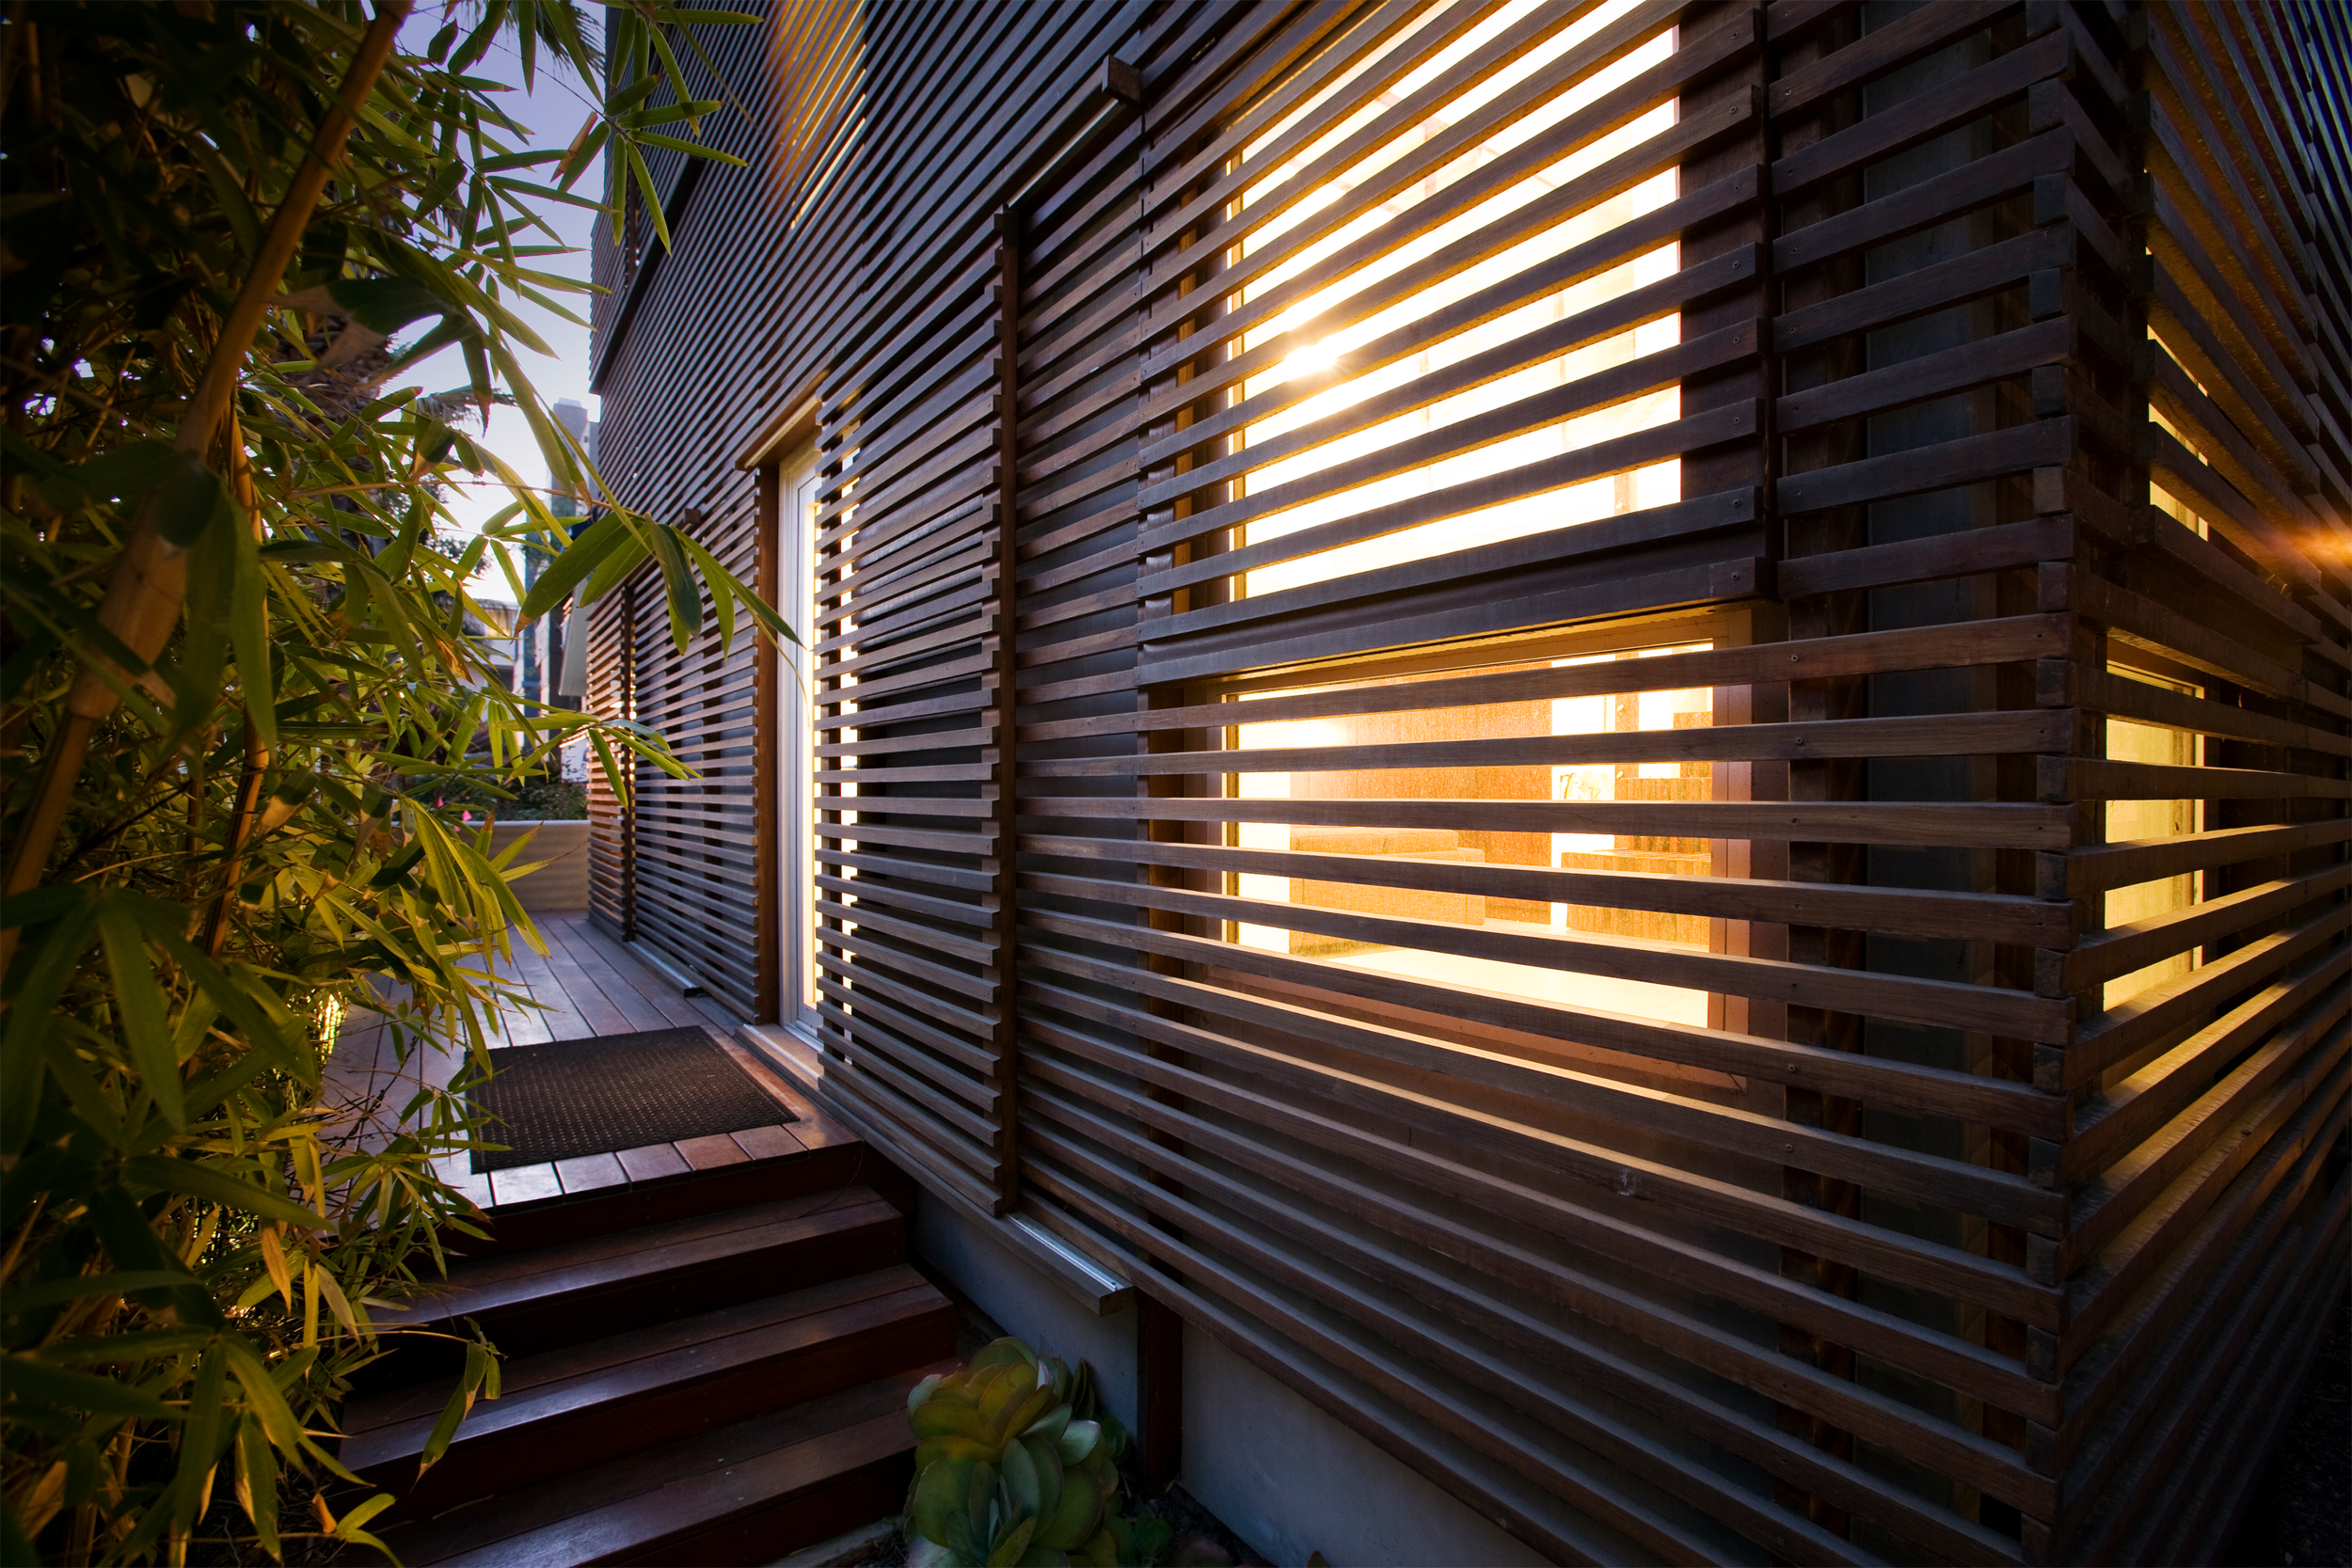 S.E.A.-Studio-Environmental-Architecture-David-Hertz-FAIA-Marina-Del-Rey-sustainable-regenerative-restorative-design-modern-residential-adaptive-reuse-remodel-passive-systems-natural-ventilation-thermostatic-skylight-Ipe-wood-slats-sliding-screen-15.png